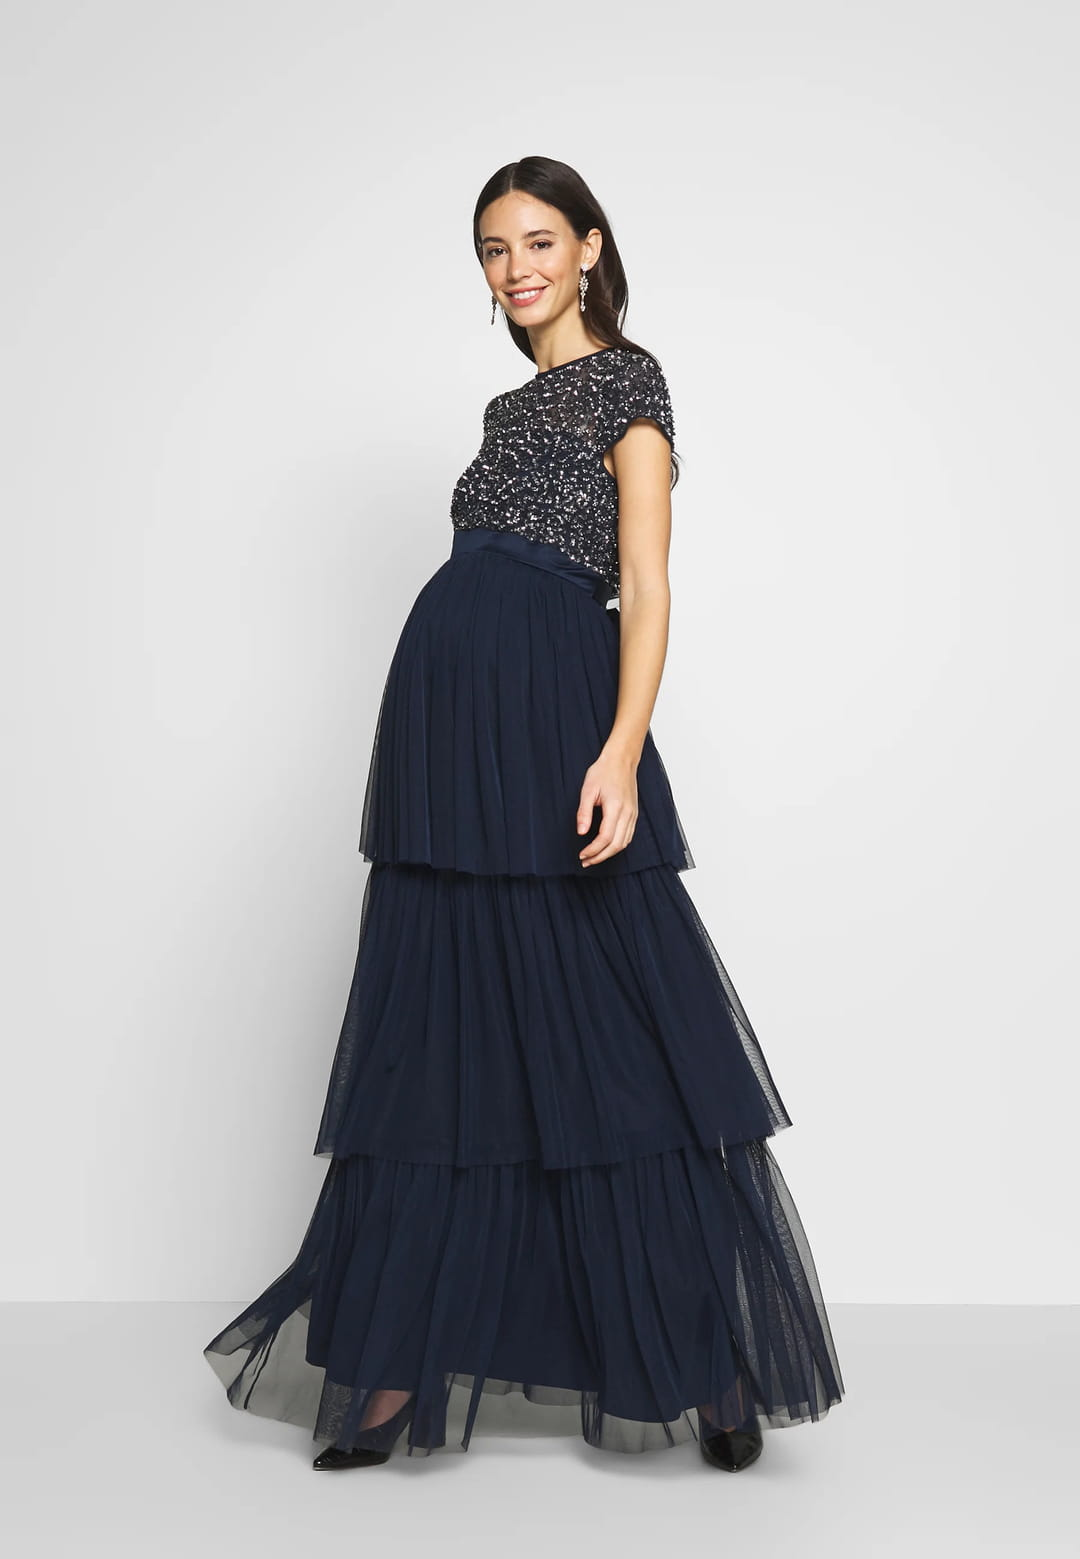 Robe-cocktail-maya-deluxe-maternity